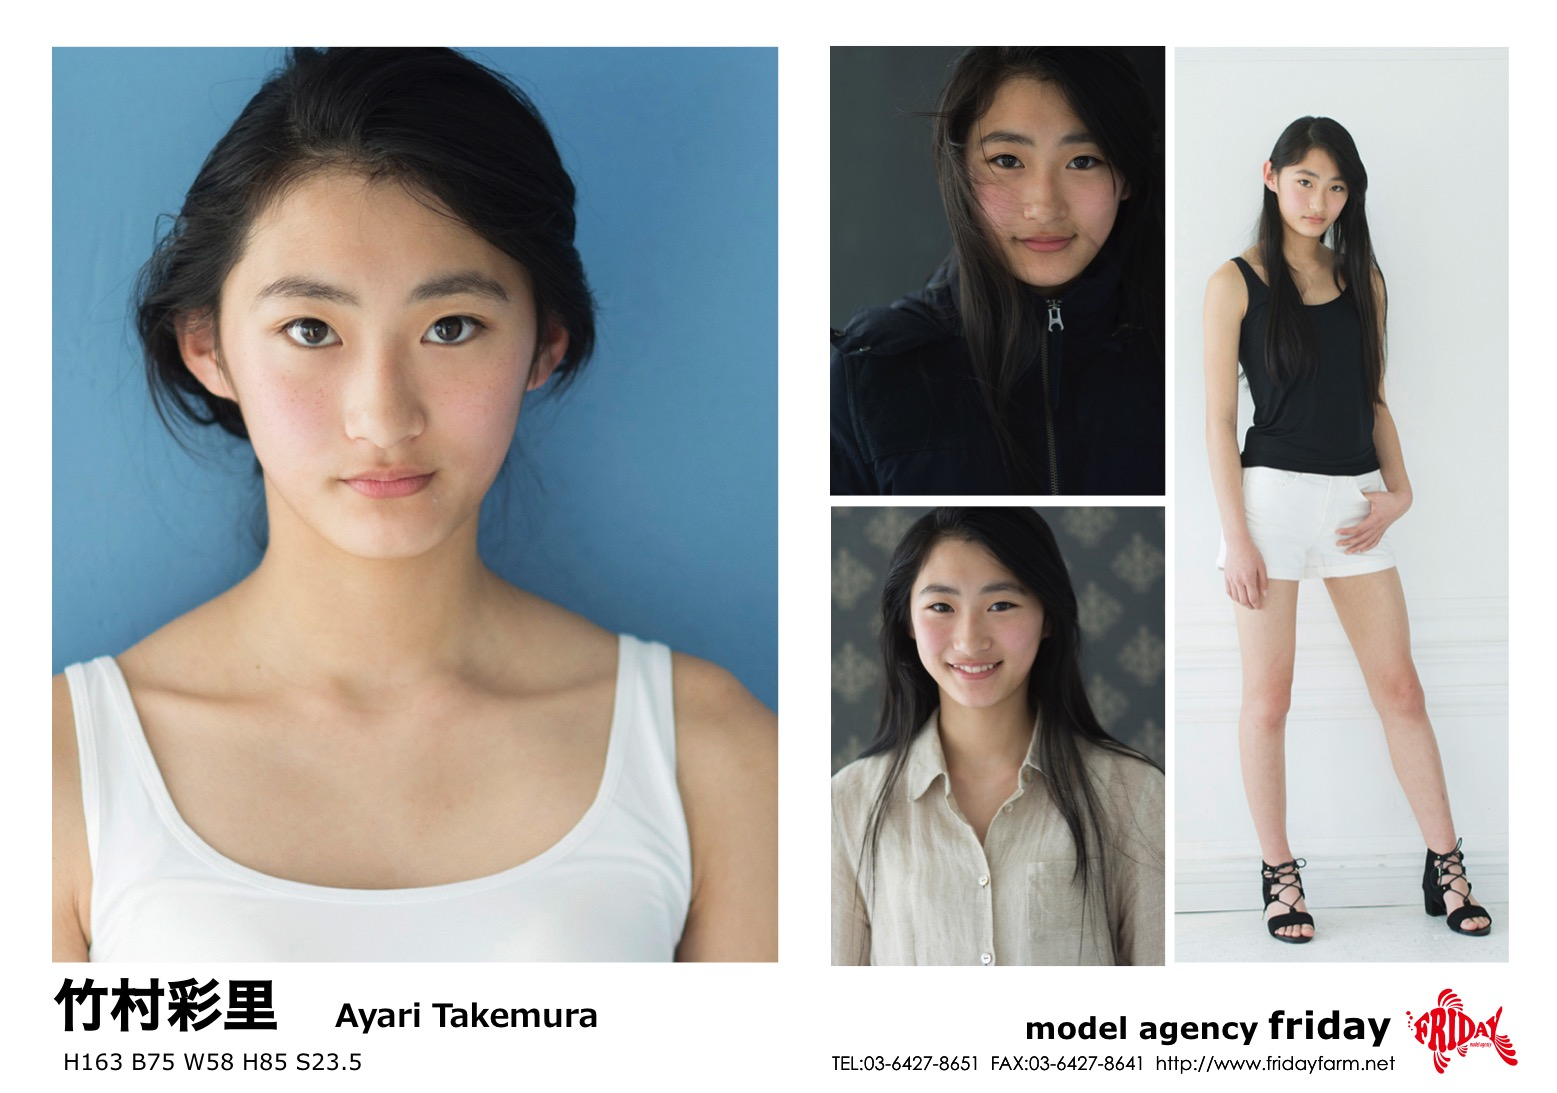 竹村彩里 - Ayari Takemura | model agency friday